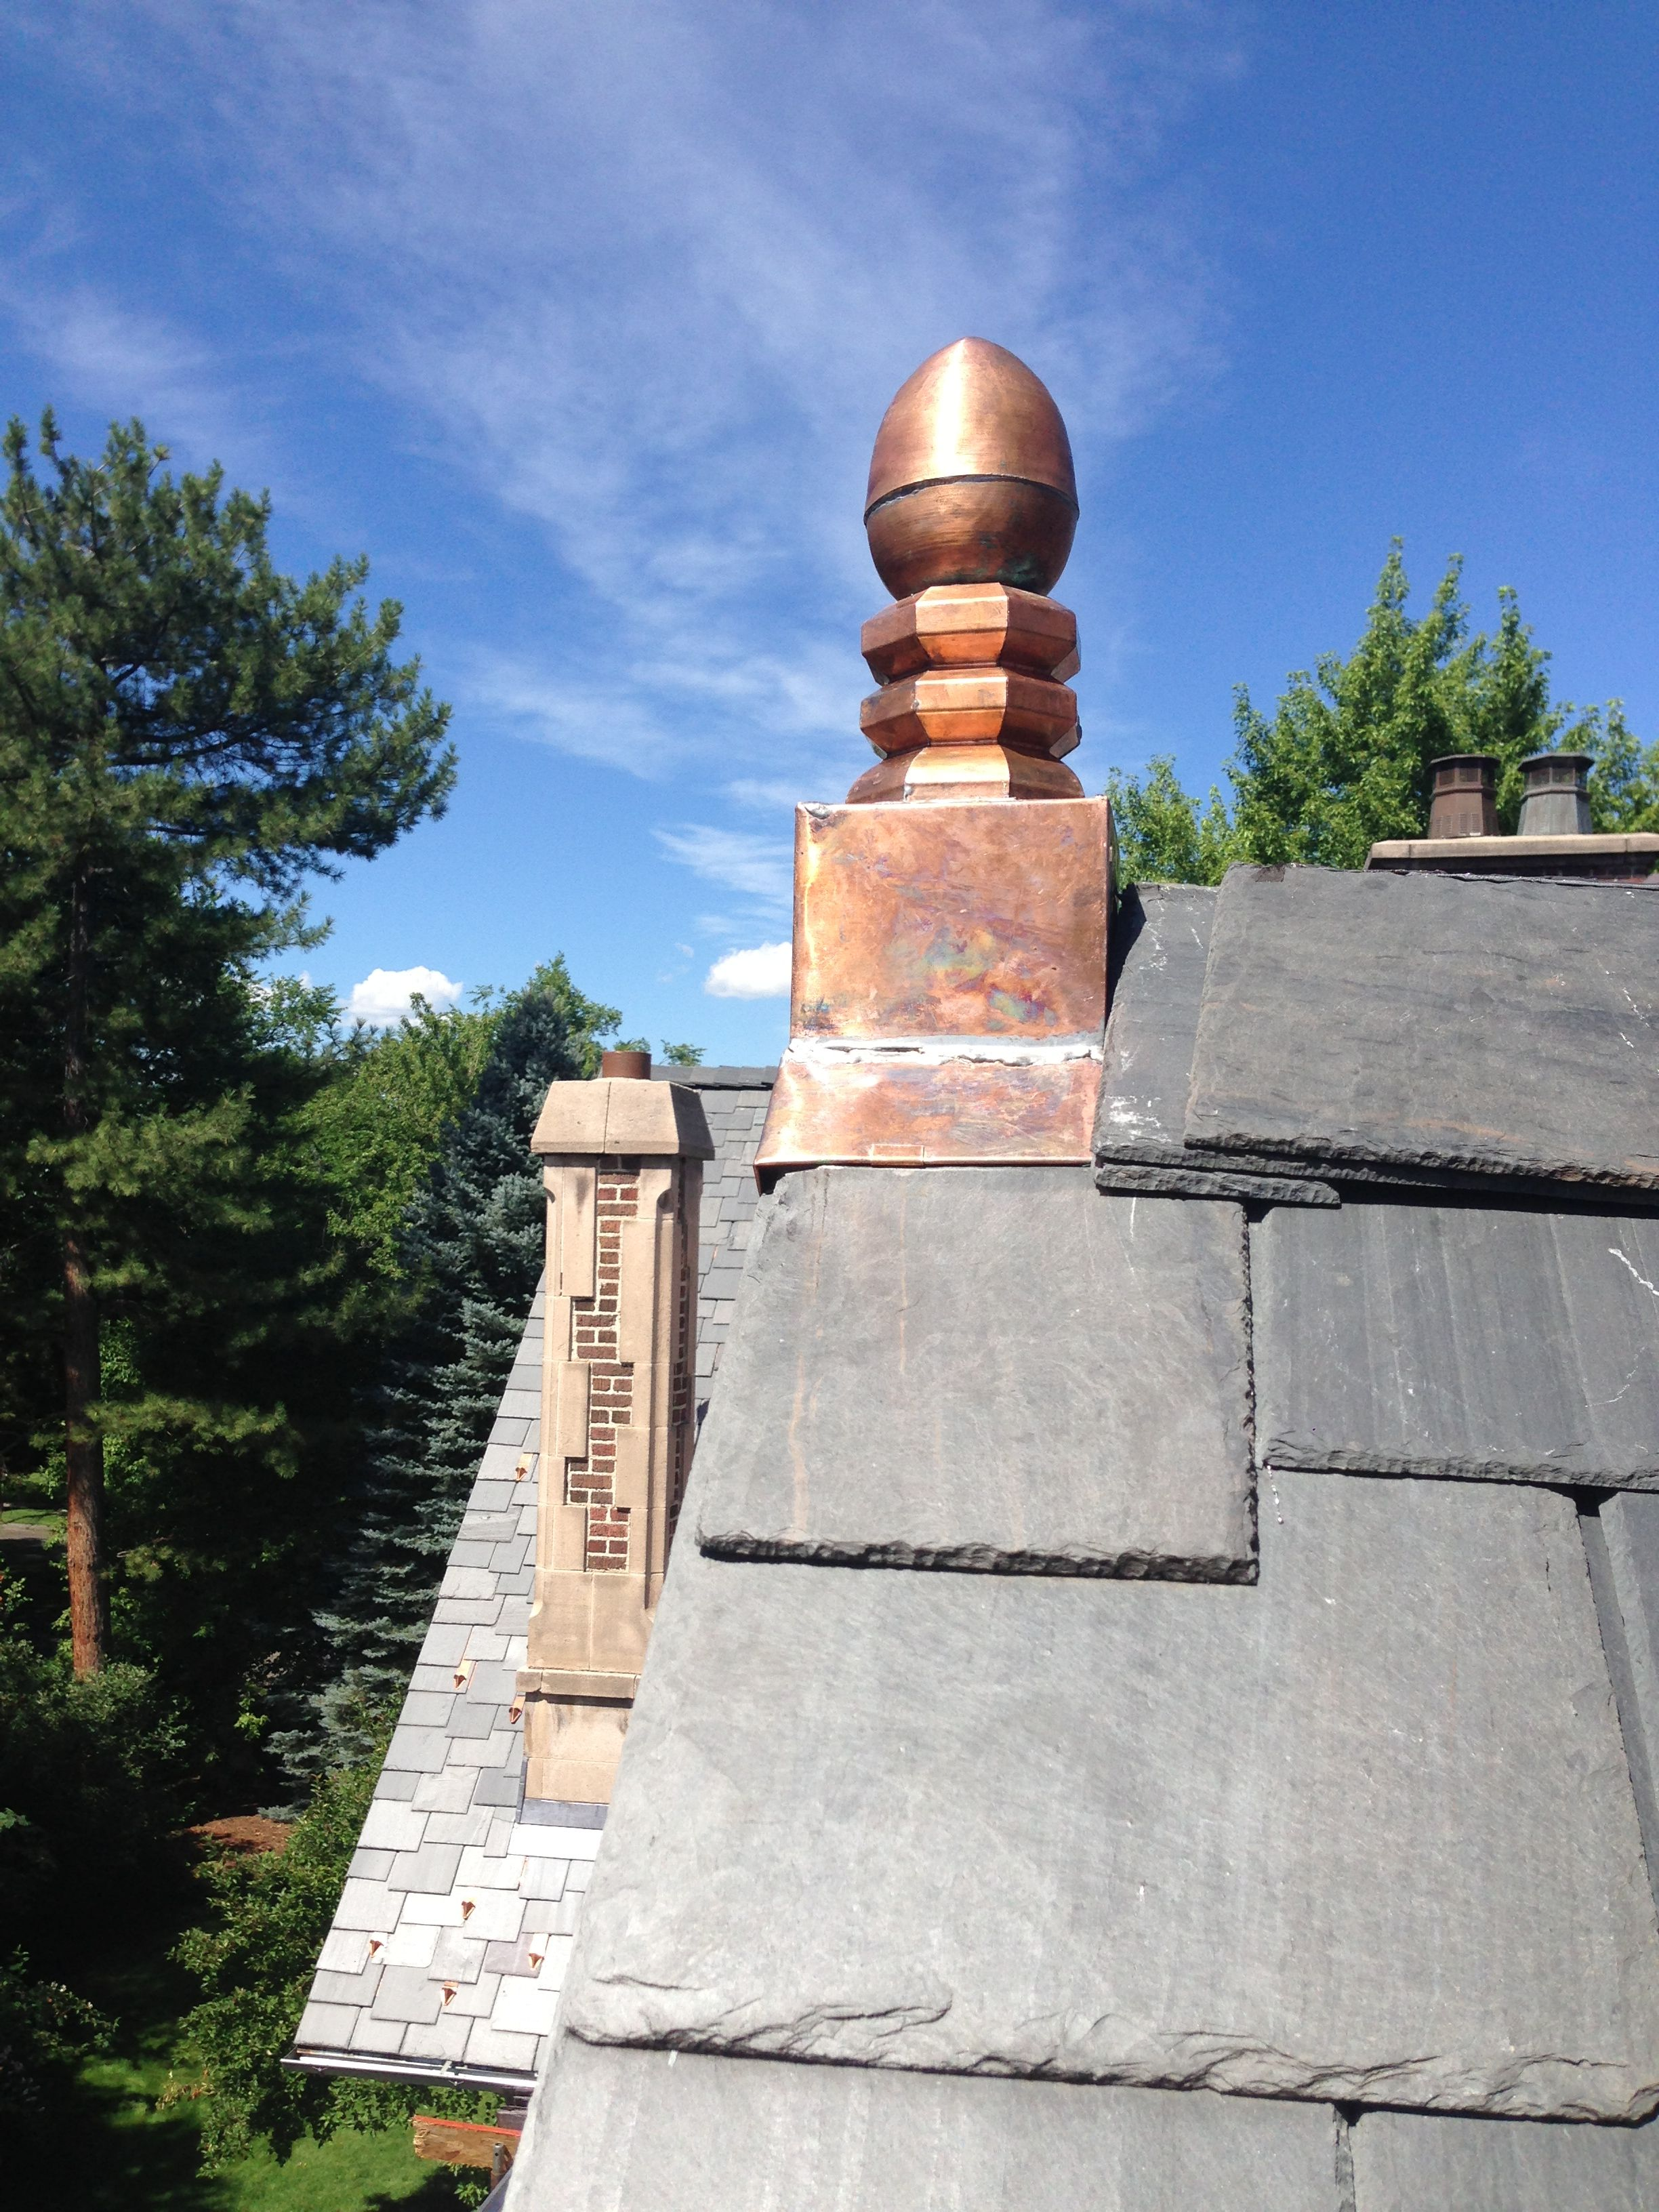 Raleigh Roofing And Restoration Custom Copper Copper Gutters Roof Architecture Brick And Stone